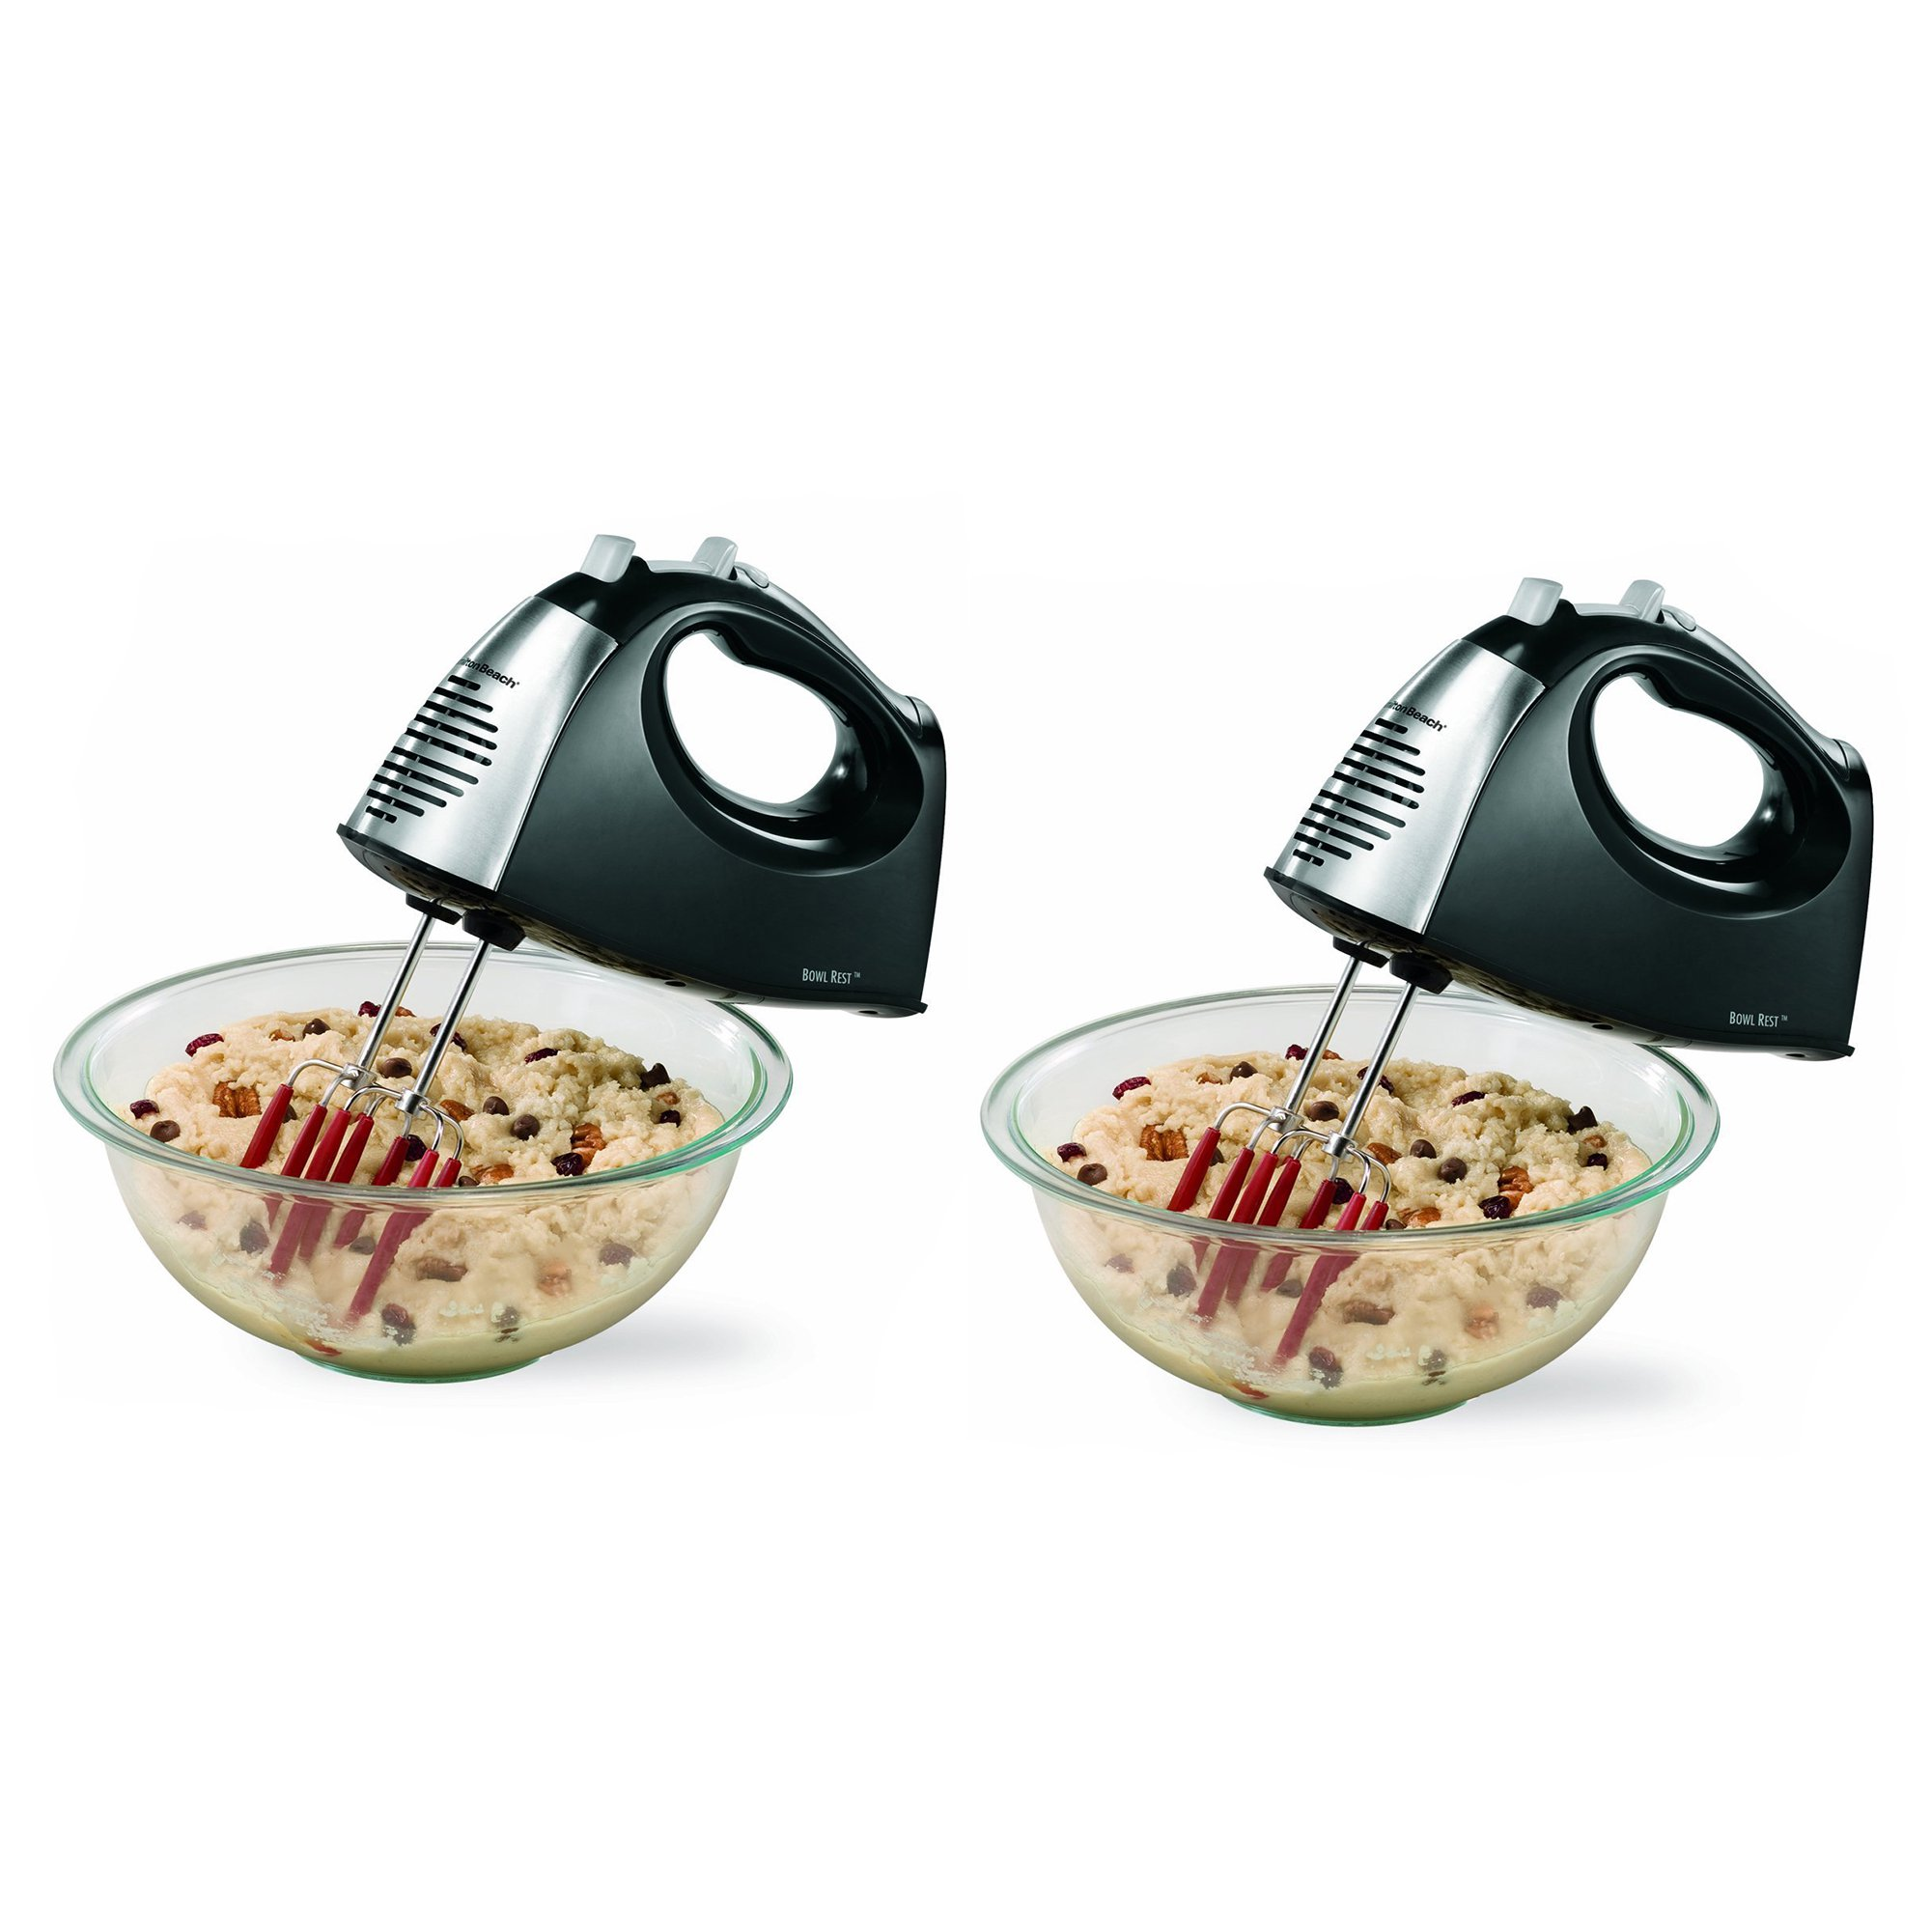 Hamilton Beach SoftScrape 6 Speed Electric Hand Mixer with Storage Case (2 Pack)